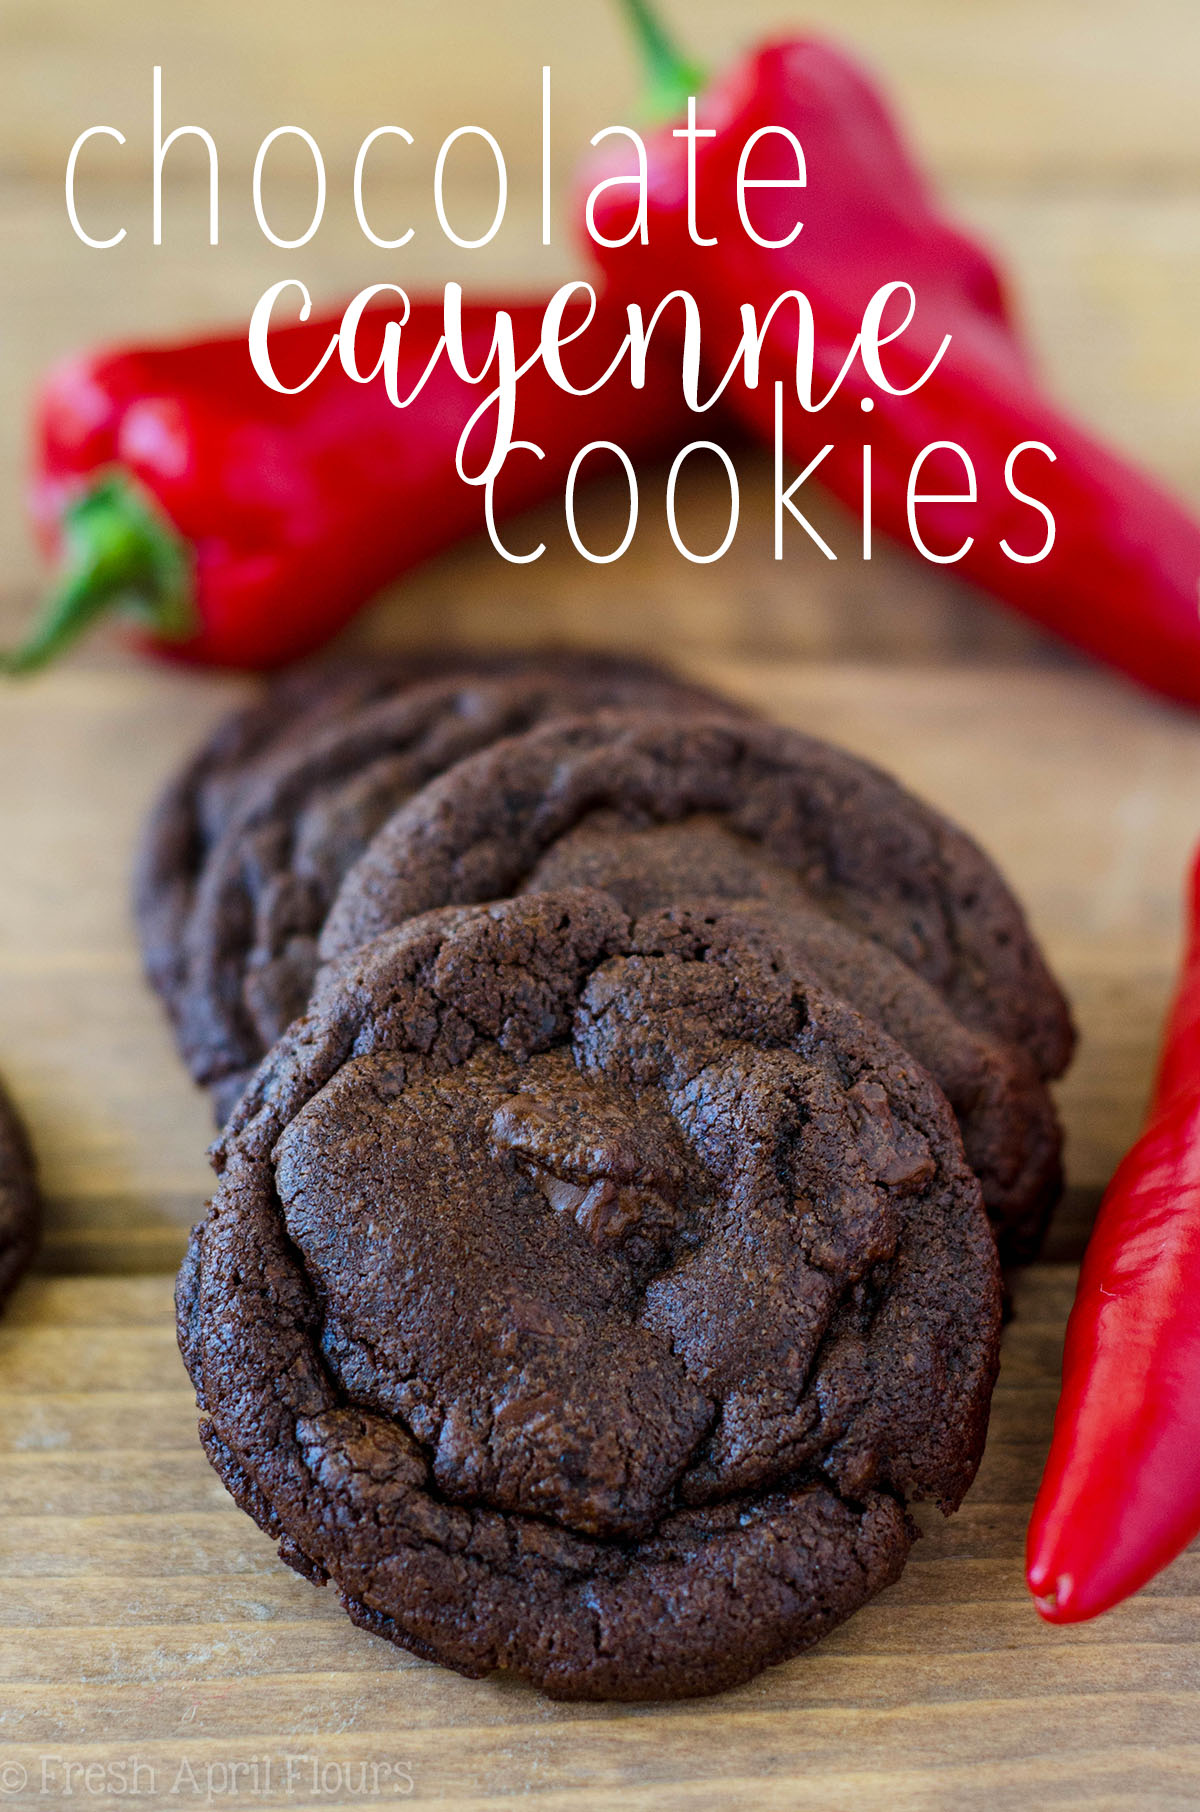 Chocolate Cayenne Cookies: Rich and decadent chocolate cookies spiced with the subtle flavors of cayenne and cinnamon. The perfect cookie for warming your belly and your tastebuds!